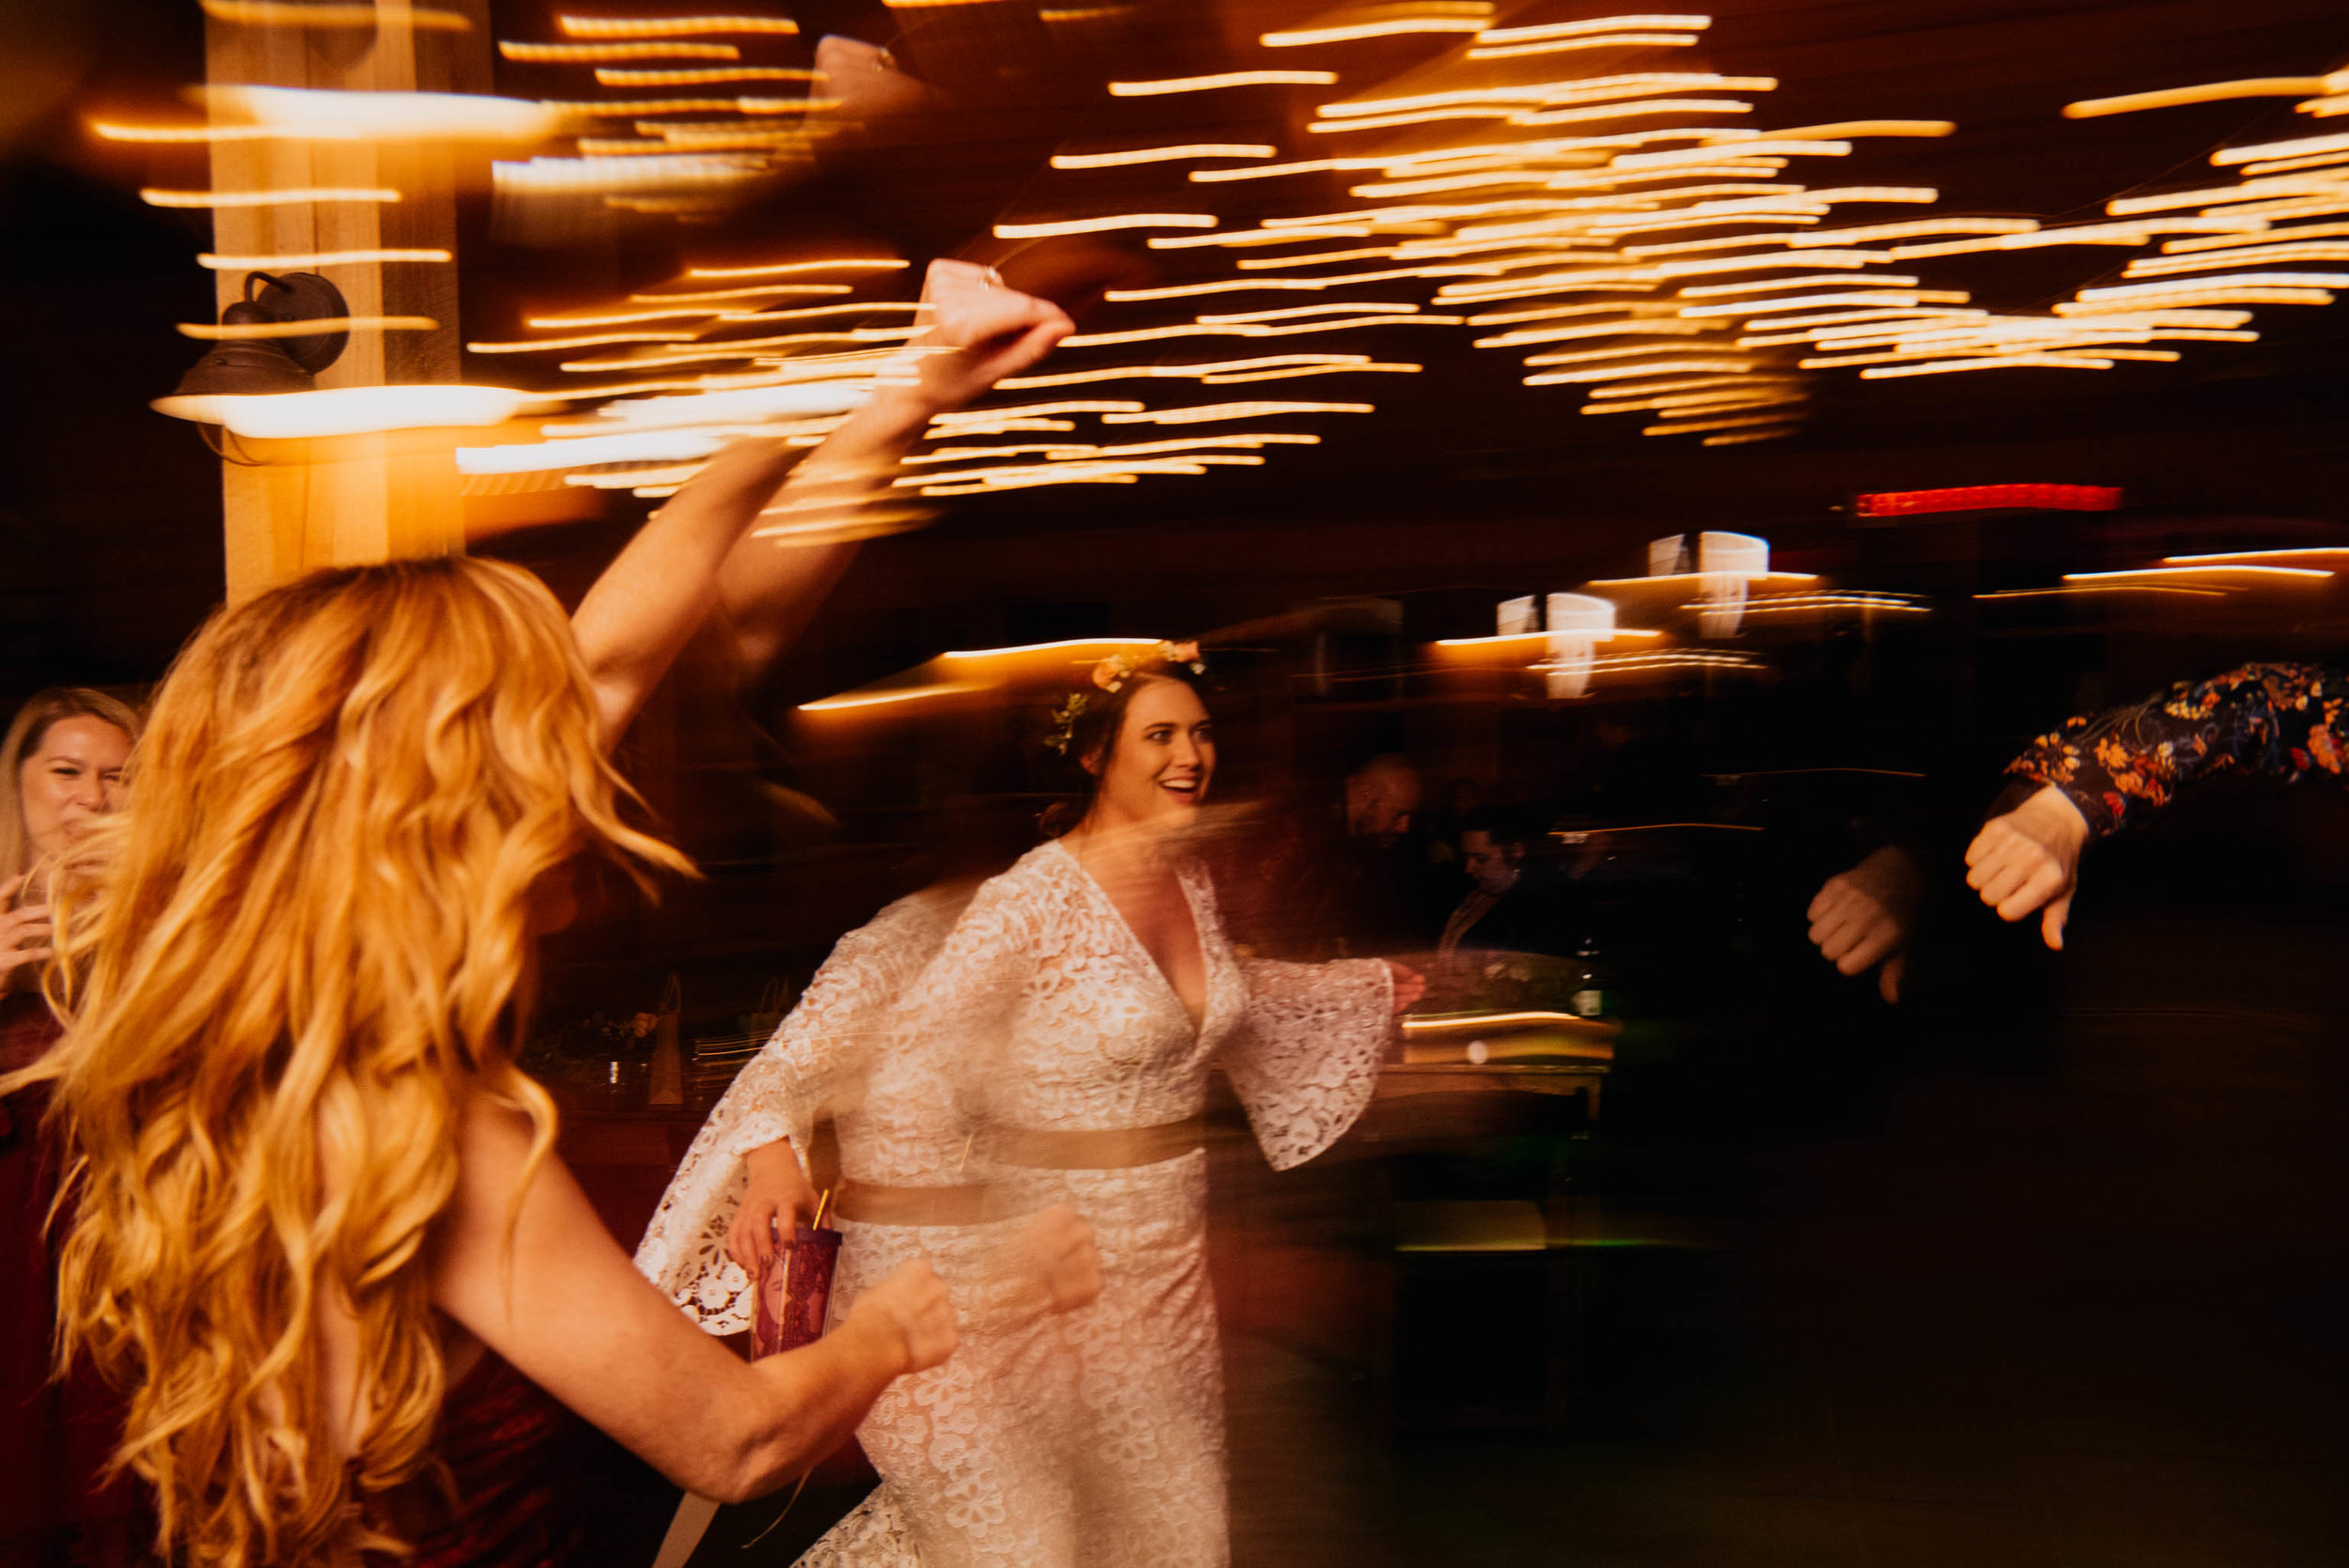 fun light trails while bride is dancing with her friends